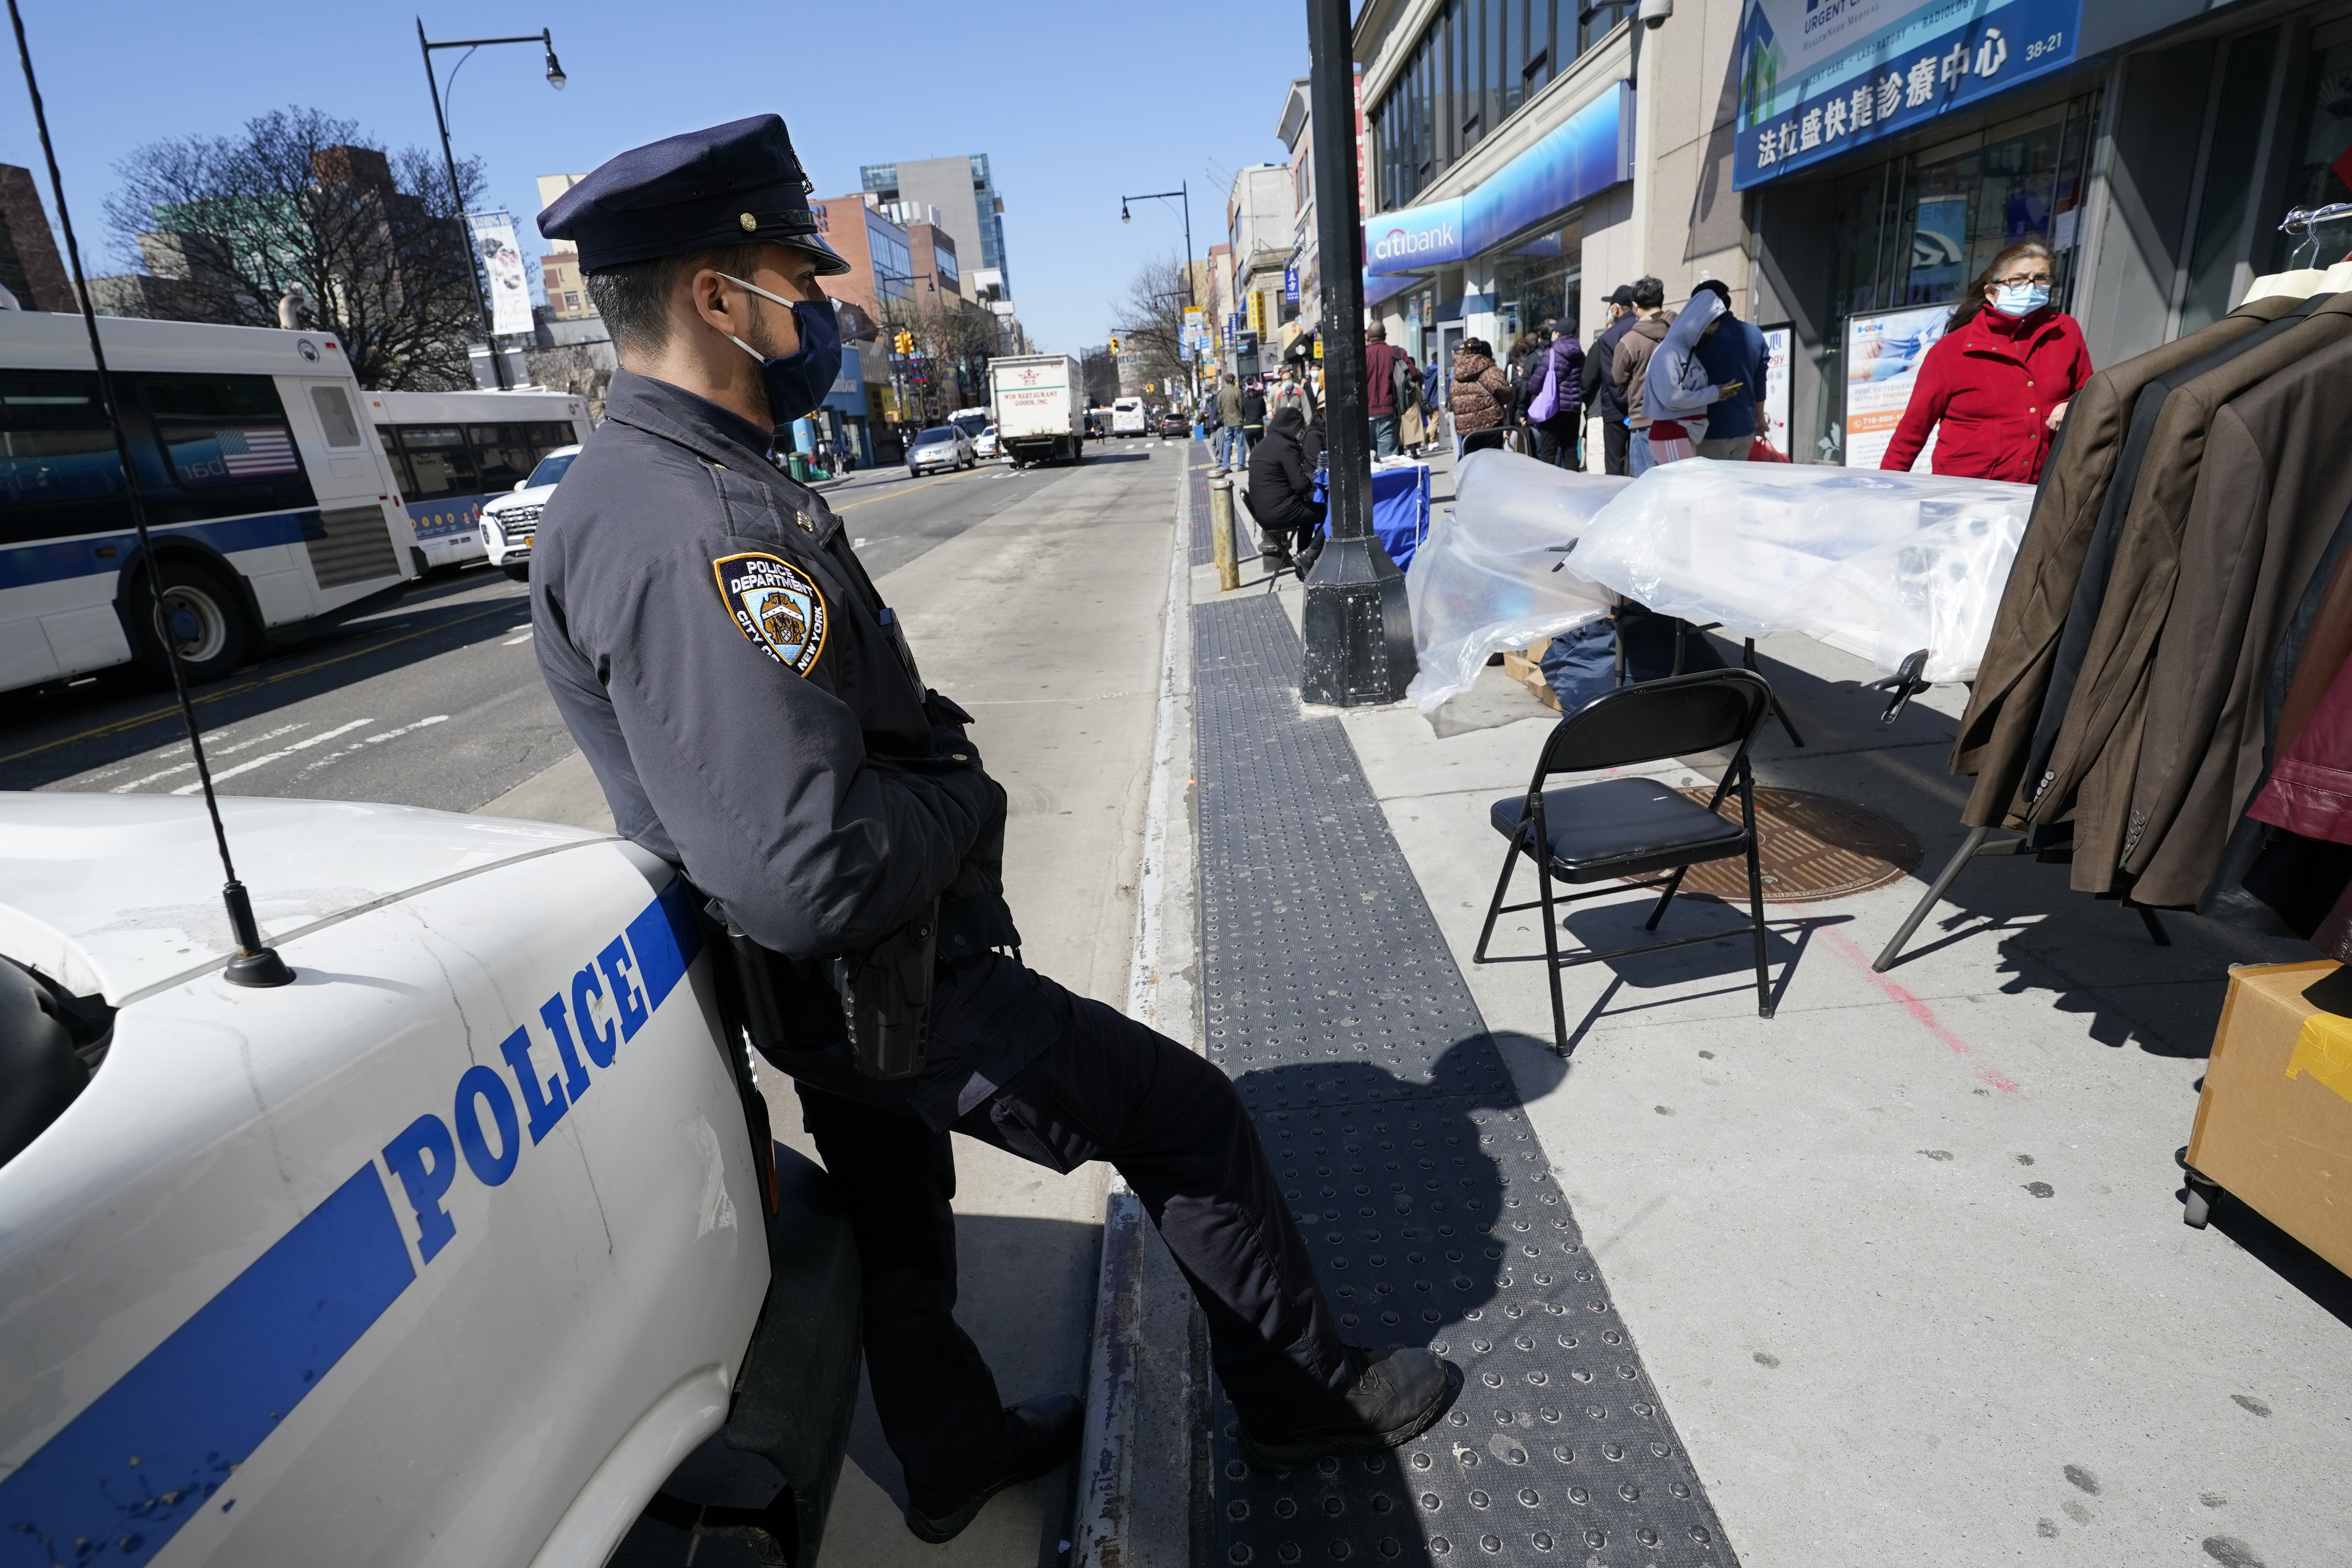 New York Police Department Officer Rodney Hierro keeps an eye on pedestrians walking on Main Street in Flushing, a heavily Asian neighborhood, Tuesday, March 30, 2021, in the Queens borough of New York. A vicious attack on an Asian American woman Monday near New York City's Times Square is drawing widespread condemnation and raising alarms about the failure of bystanders to intervene amid a rash of anti-Asian violence across the U.S. (AP Photo/Kathy Willens)